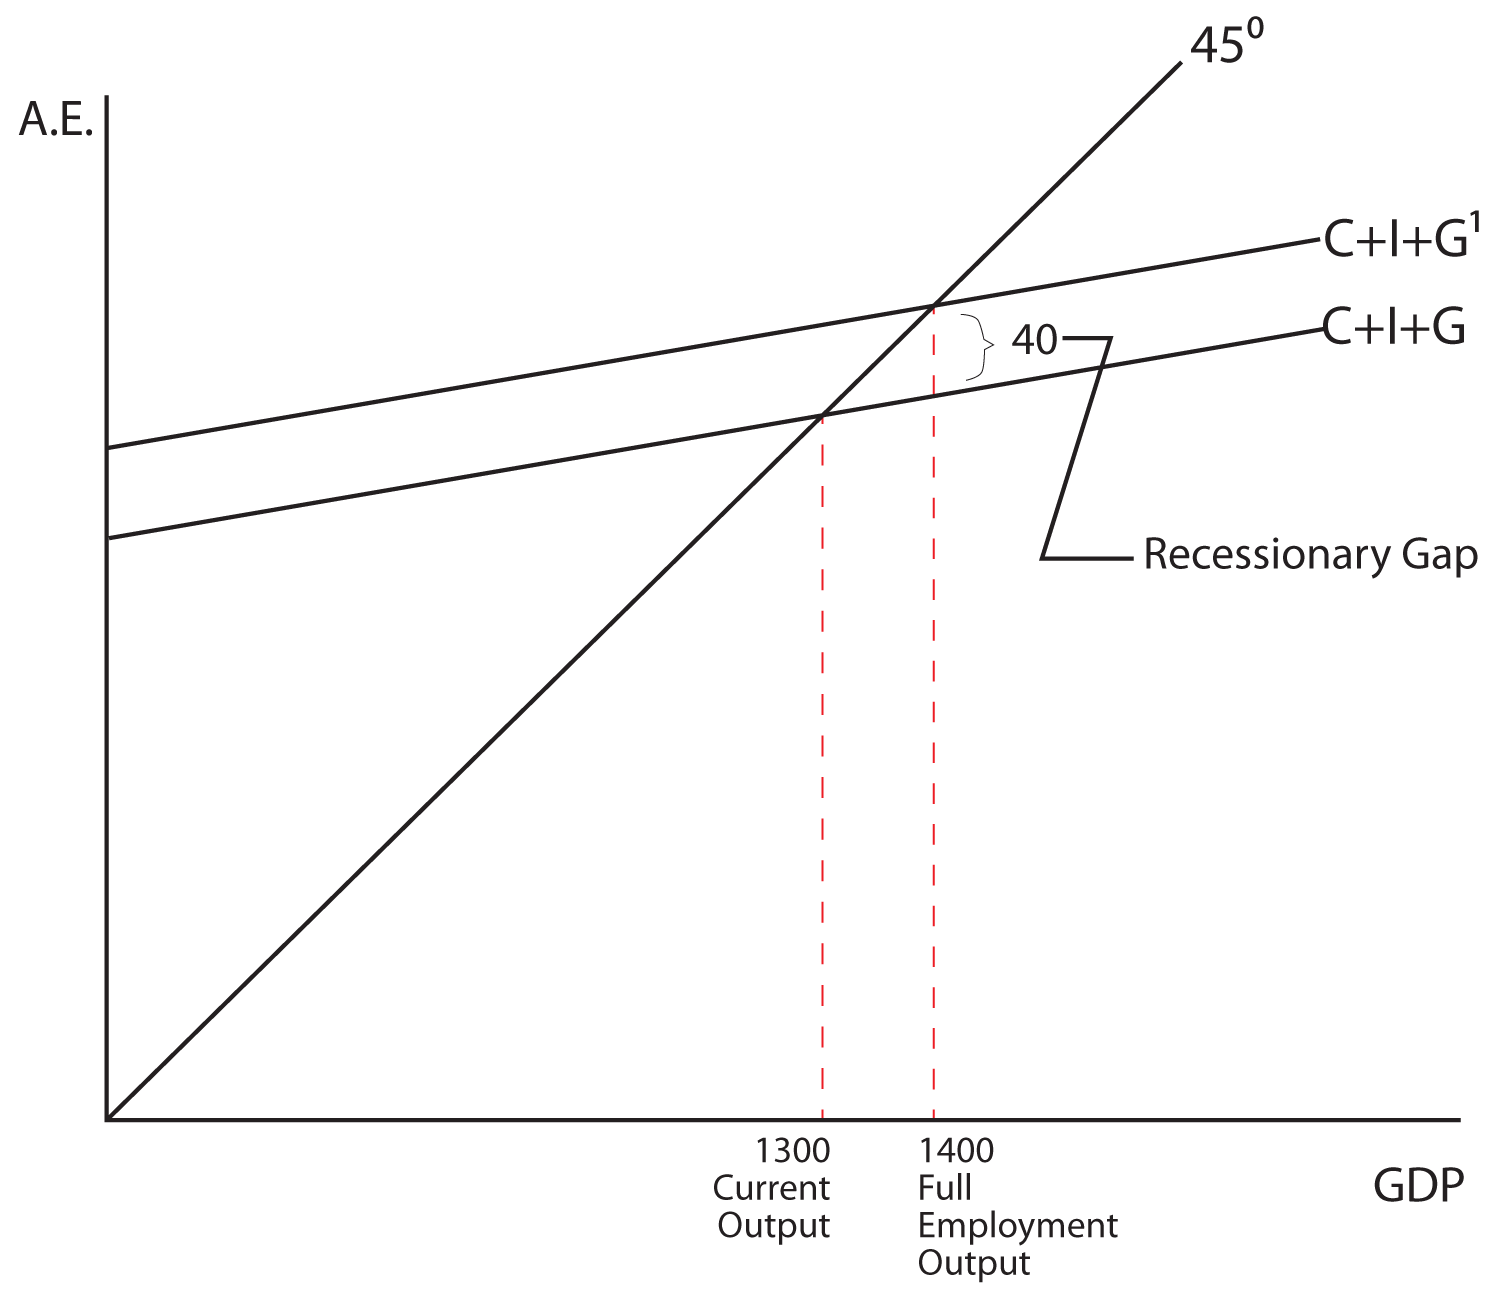 Econ 151 macroeconomics image 712 the image shows a graph the y axis is labeled ae the pooptronica Images